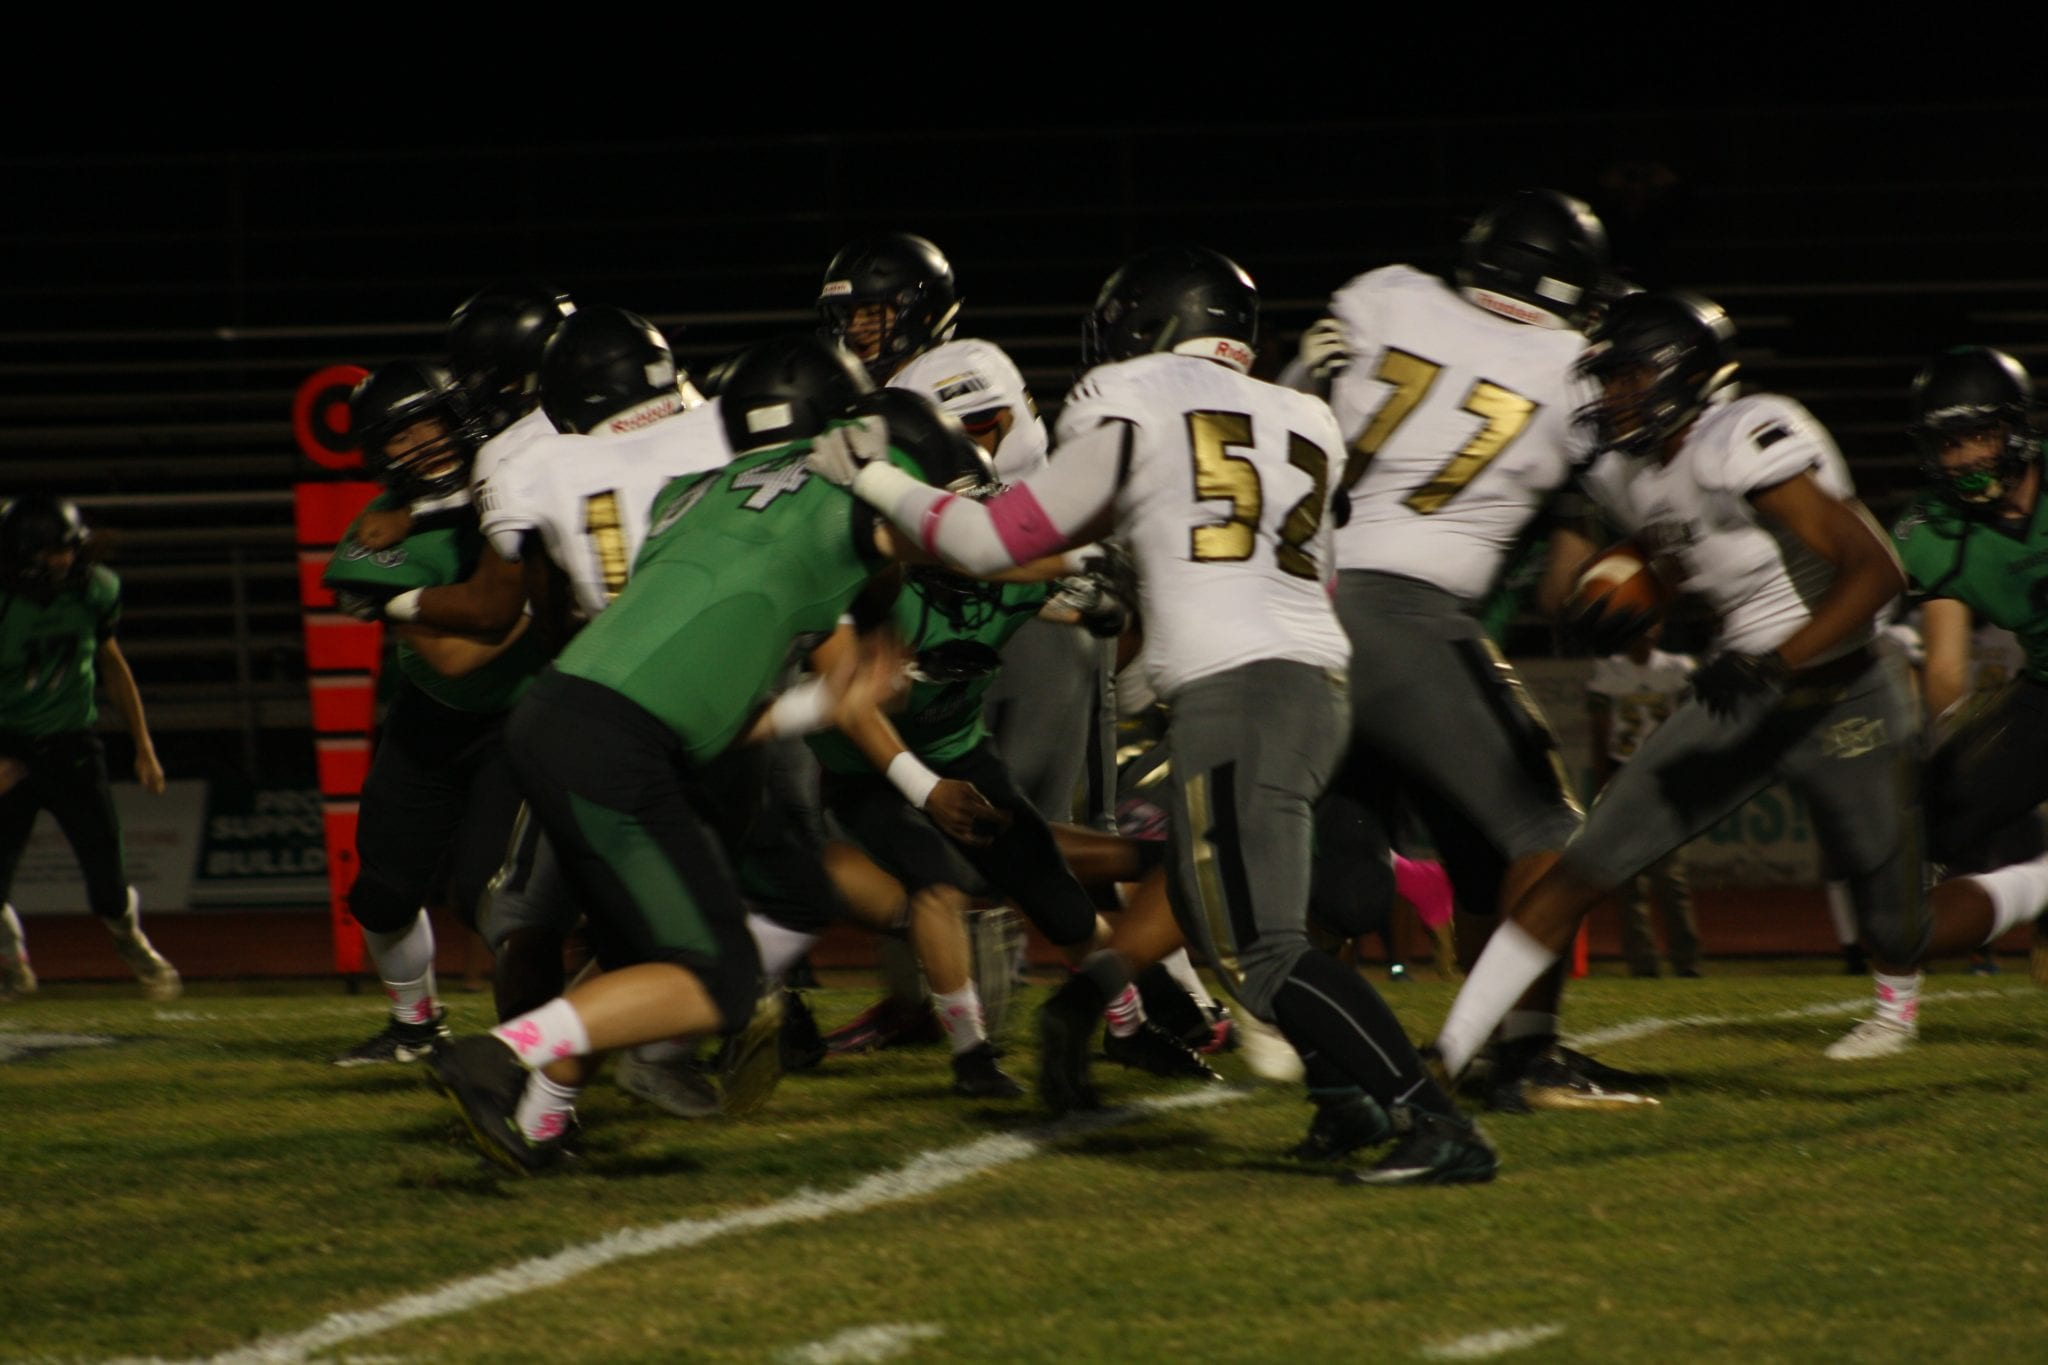 Miners 28-18 upset knocks Bulldogs from playoffs